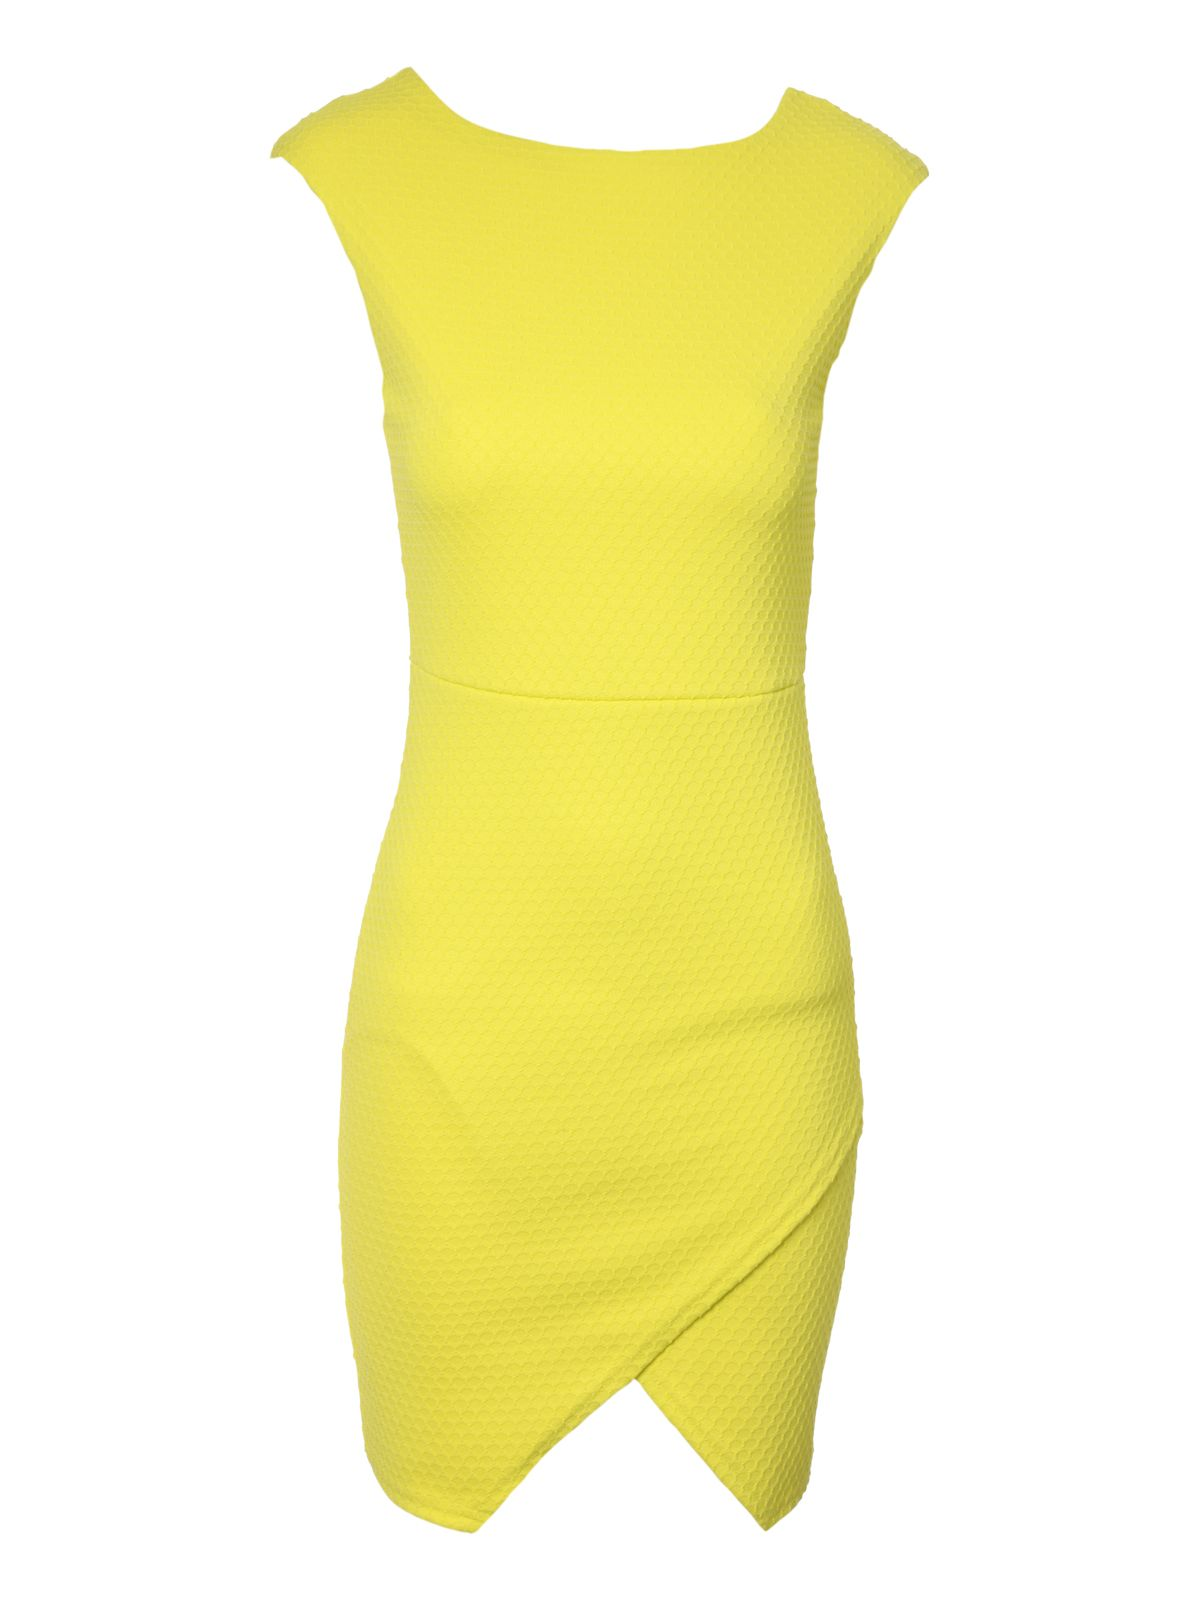 Textured Neon Wrap Asymmetric Dress